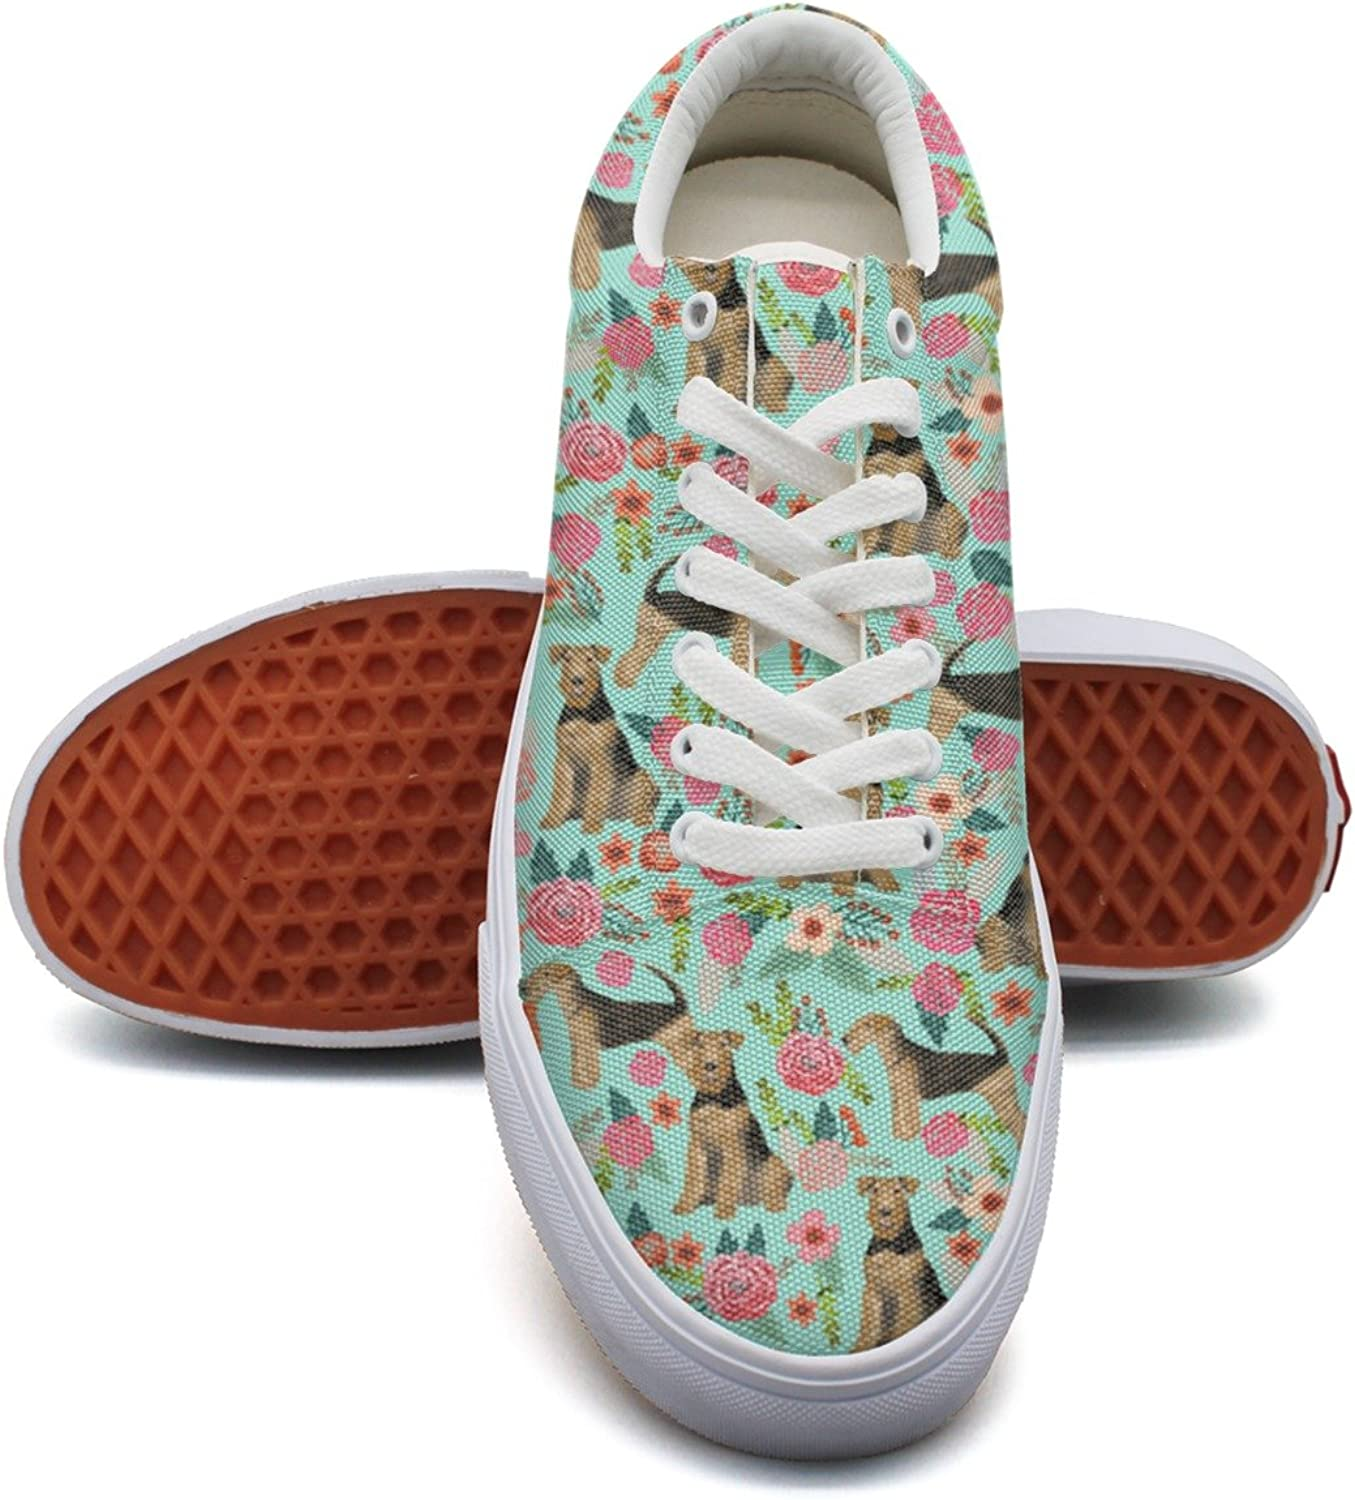 Feenfling Cute Airedale Terrier Dog Florals Womens Latest Canvas Low Top Exclusive Sneaker for Women's